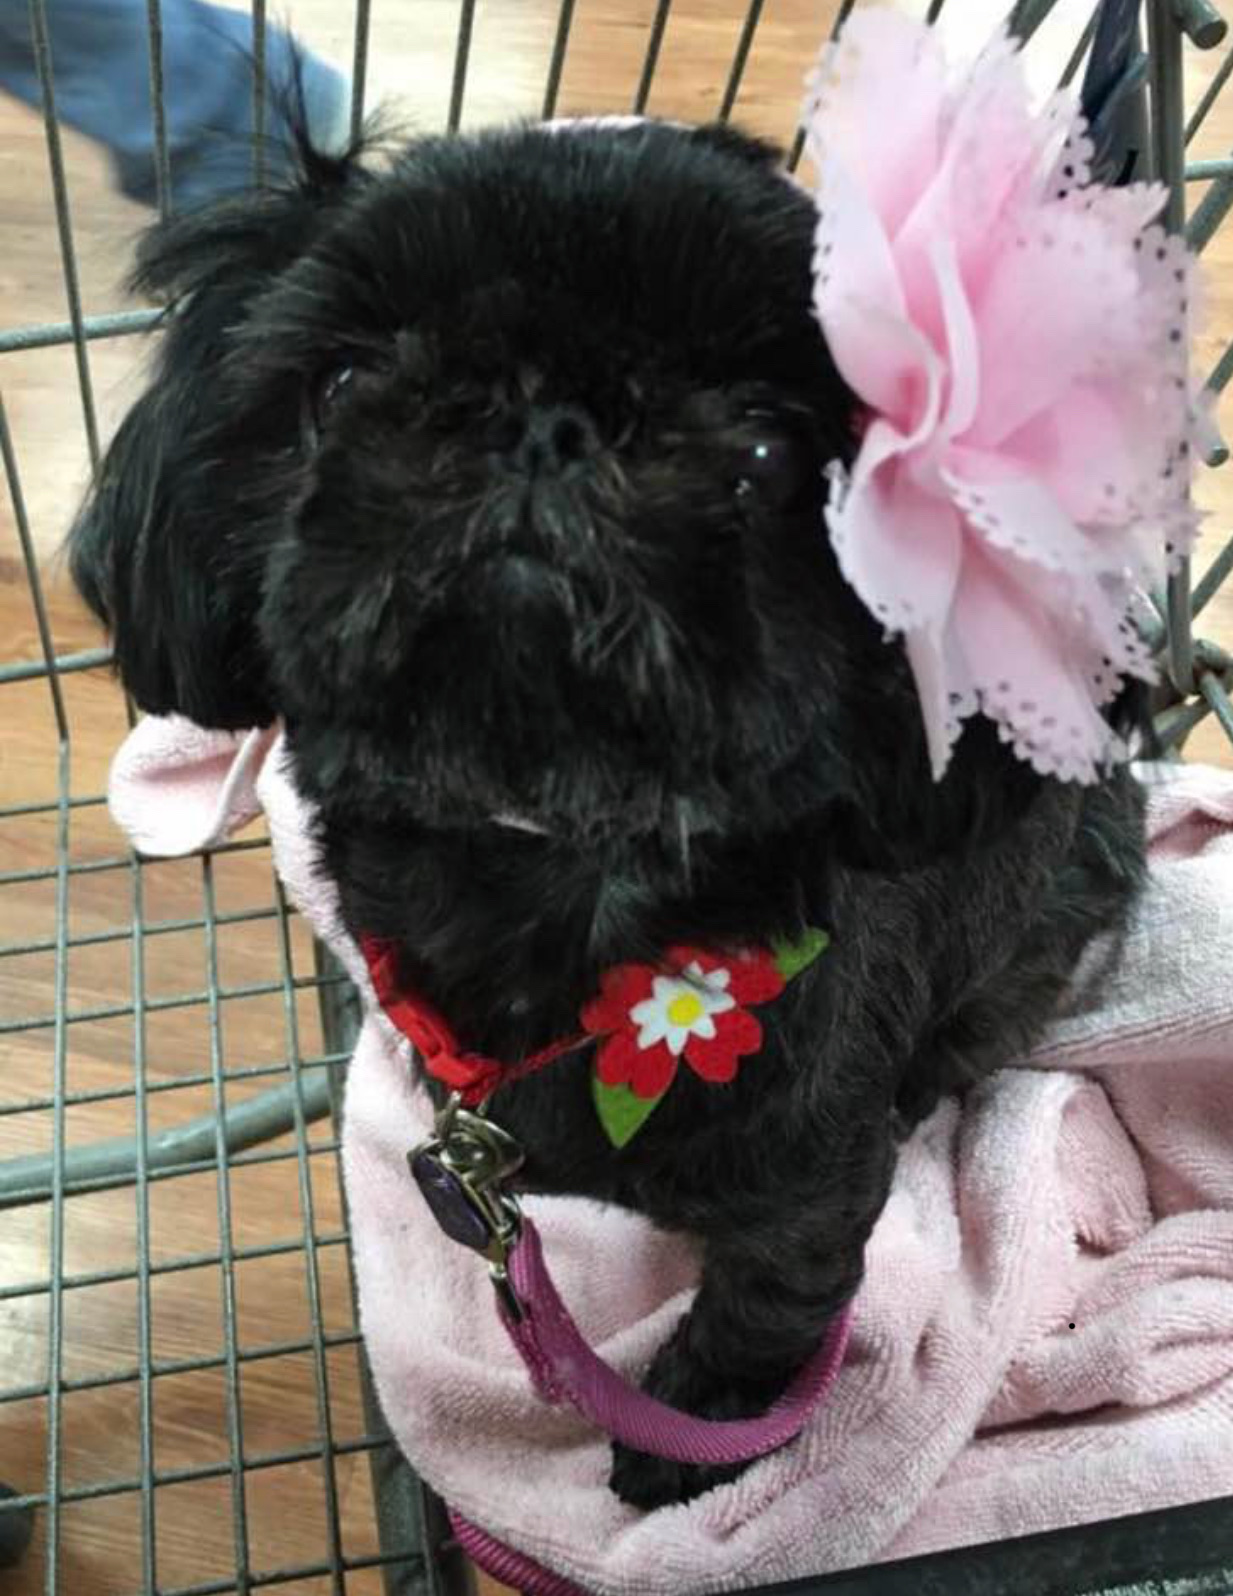 """DEE-DEE: 6 yr old Shih Tzu. I'm from Honolulu and in my spare time I love to visit seniors at care homes and make them happy as a Hawaiian Humane Society """"Joy Ambassador."""" I love treats and giving high fives!! My absolute favorite thing to do of all time is to snuggle up to someone (I love people!)"""